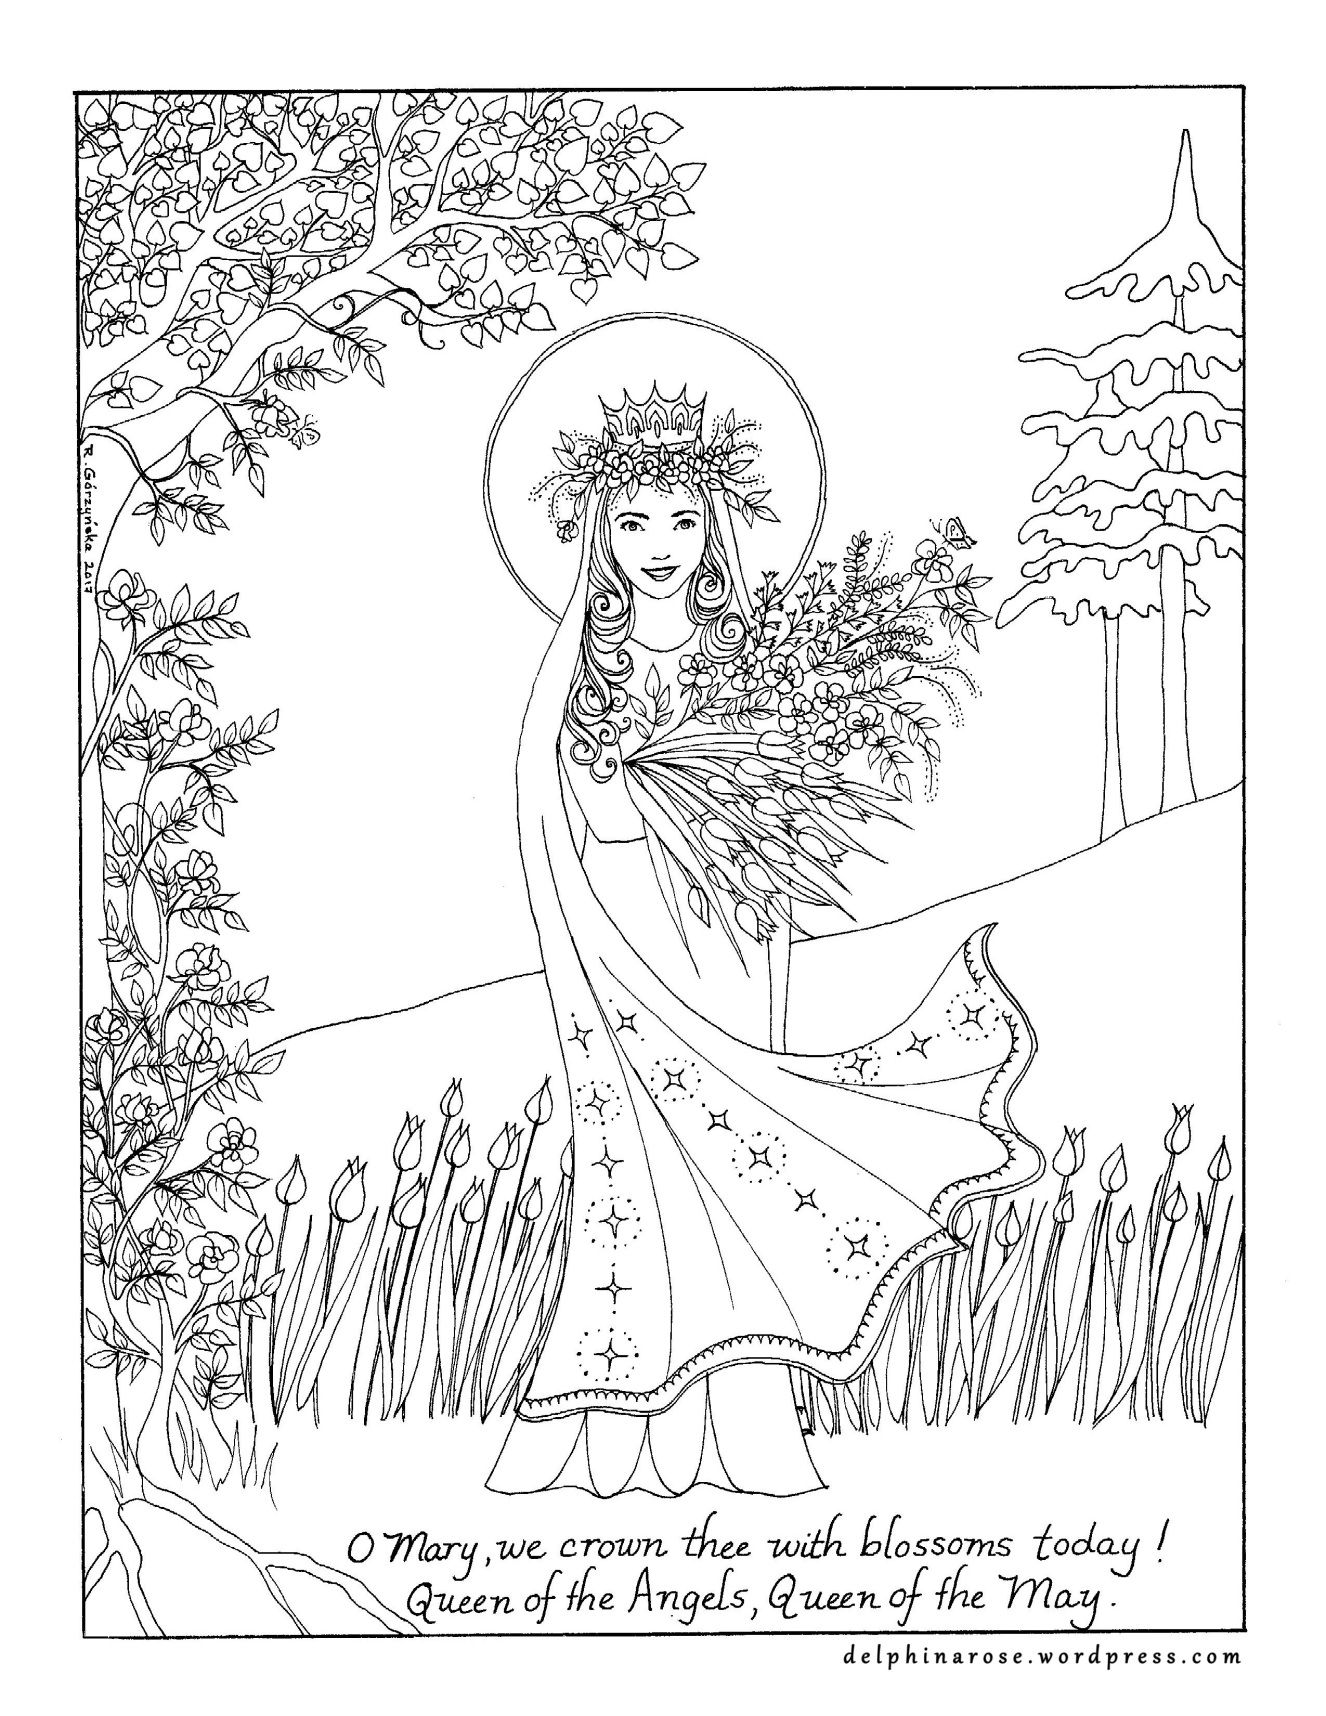 May Queen — Catholic Coloring Page